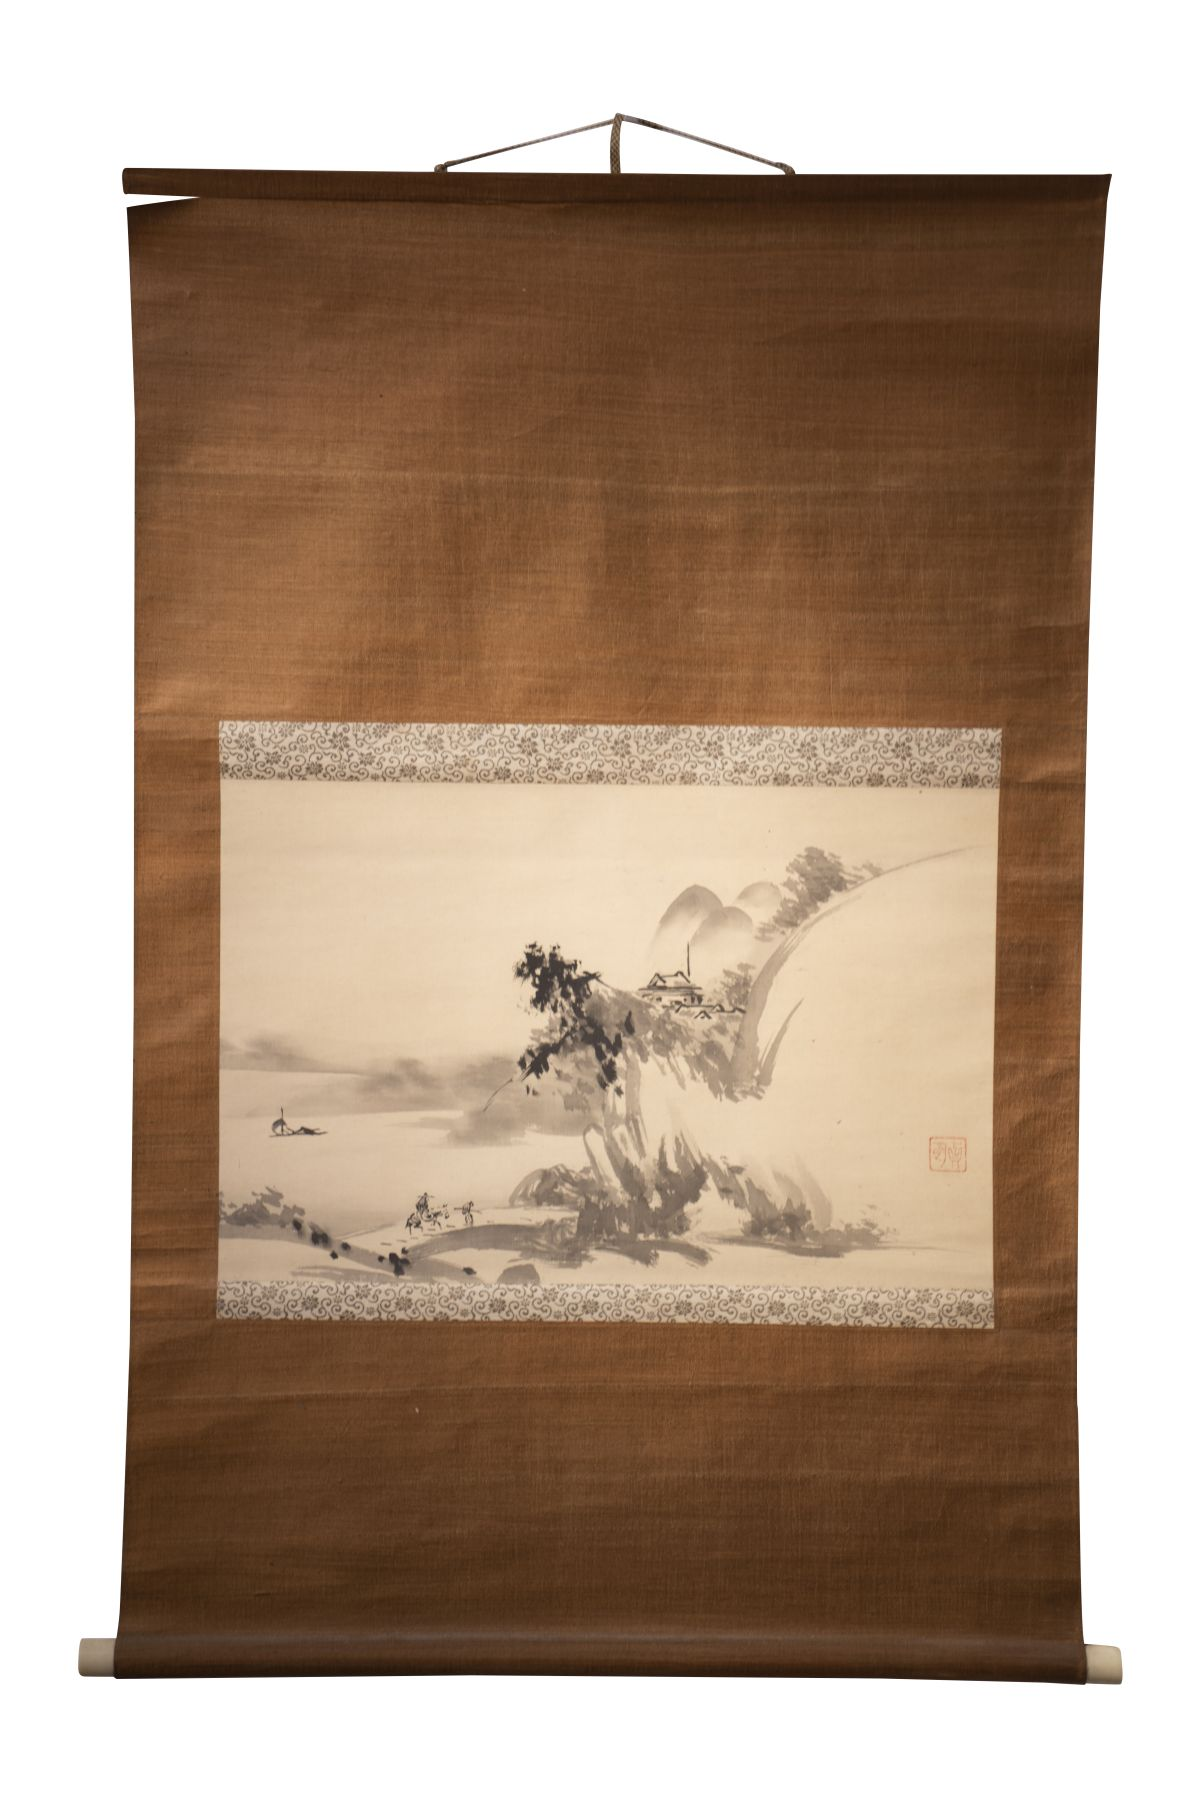 #85 Chinese hanging scroll | Chinesische Hängerolle Image